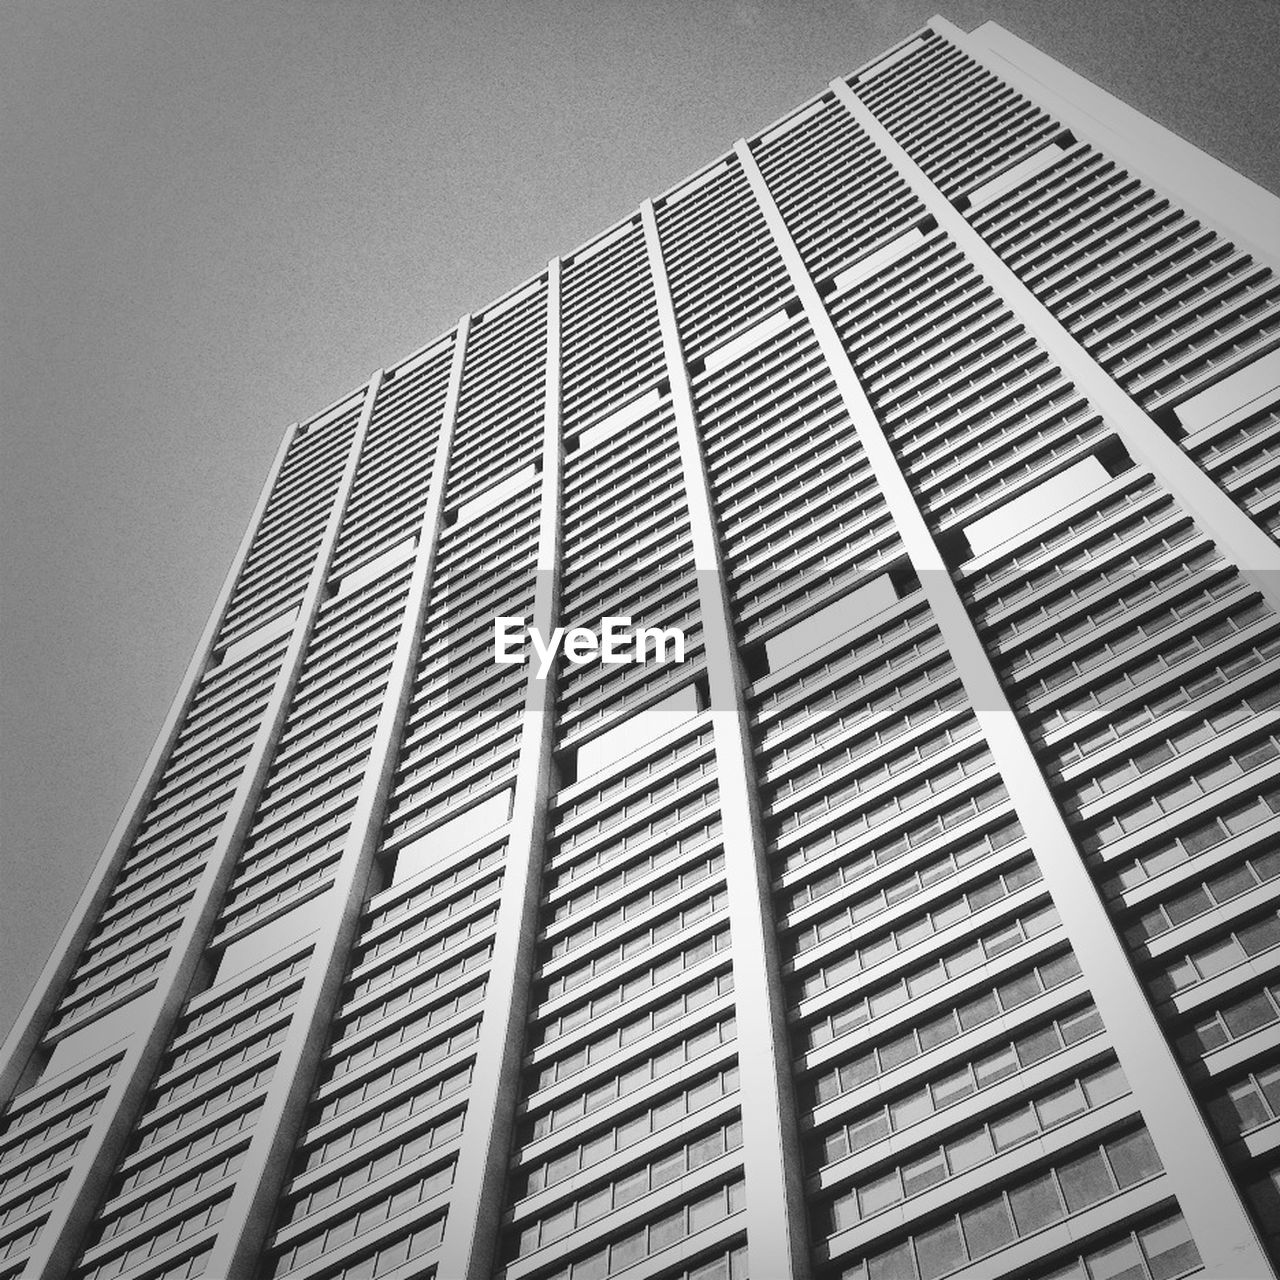 architecture, low angle view, building exterior, built structure, modern, no people, outdoors, day, city, skyscraper, clear sky, sky